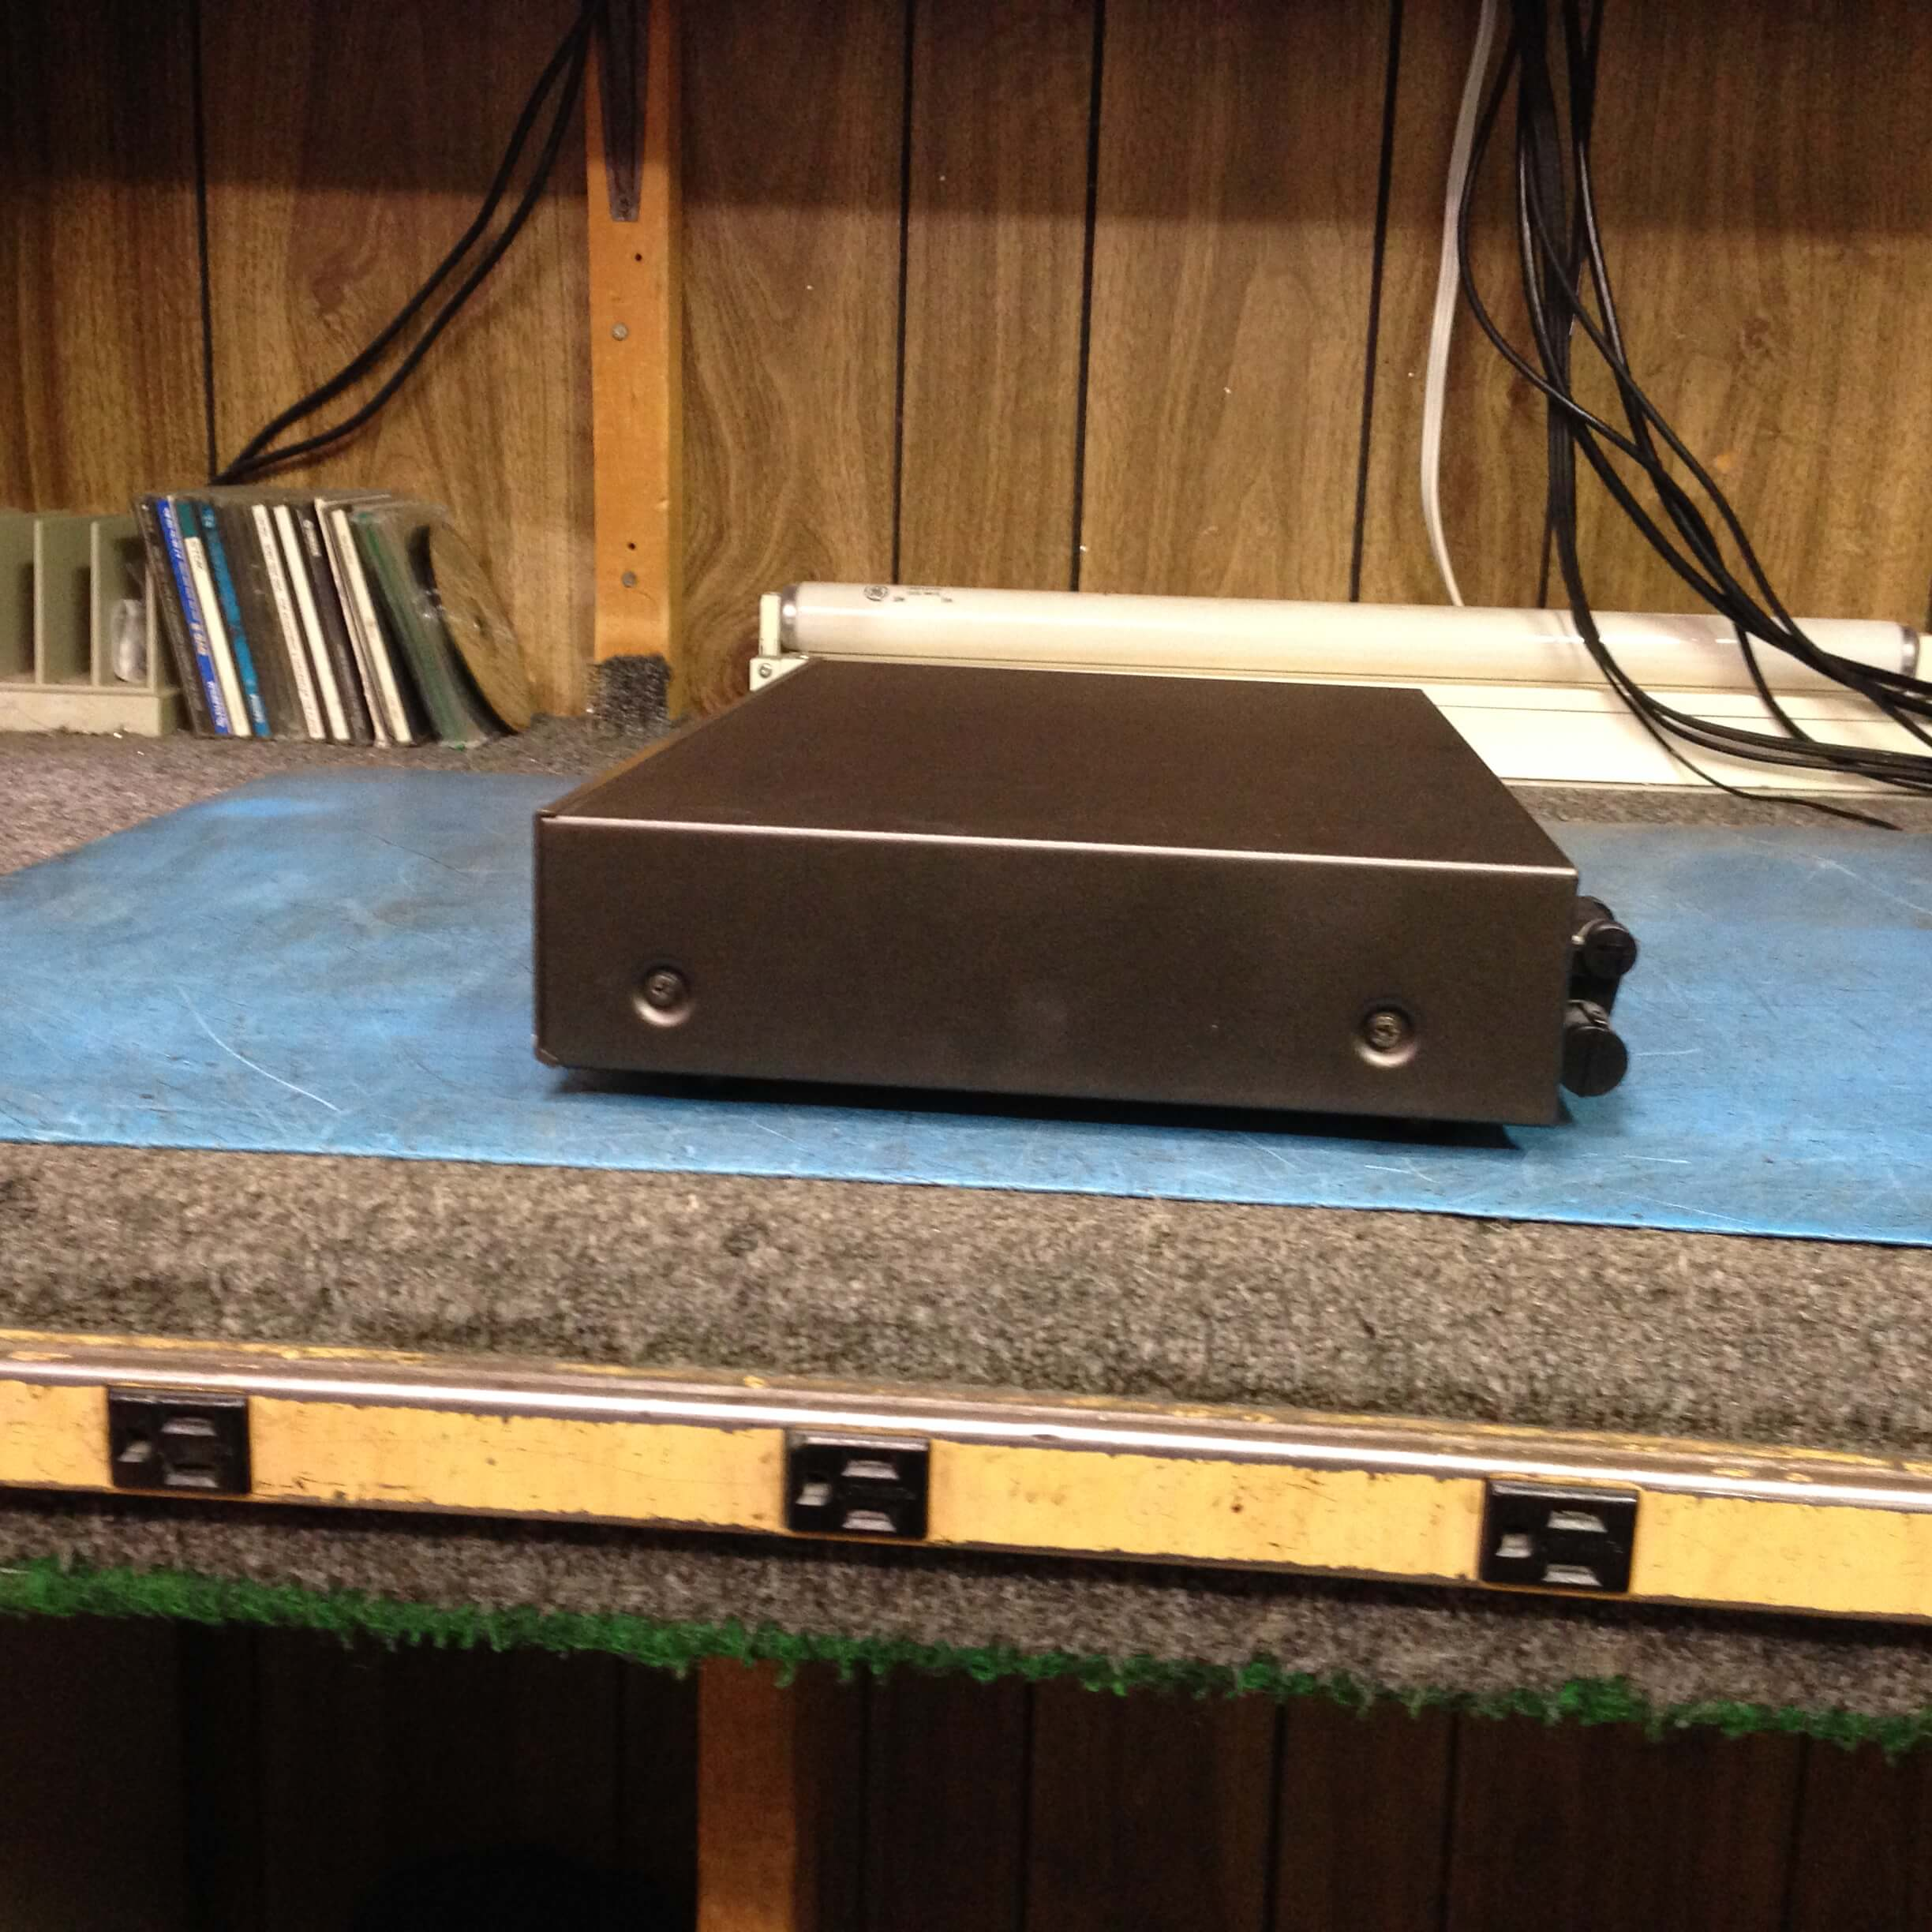 NAD Stereo System (4155 tuner, 1150 preamplifier, 2200 amplifier)